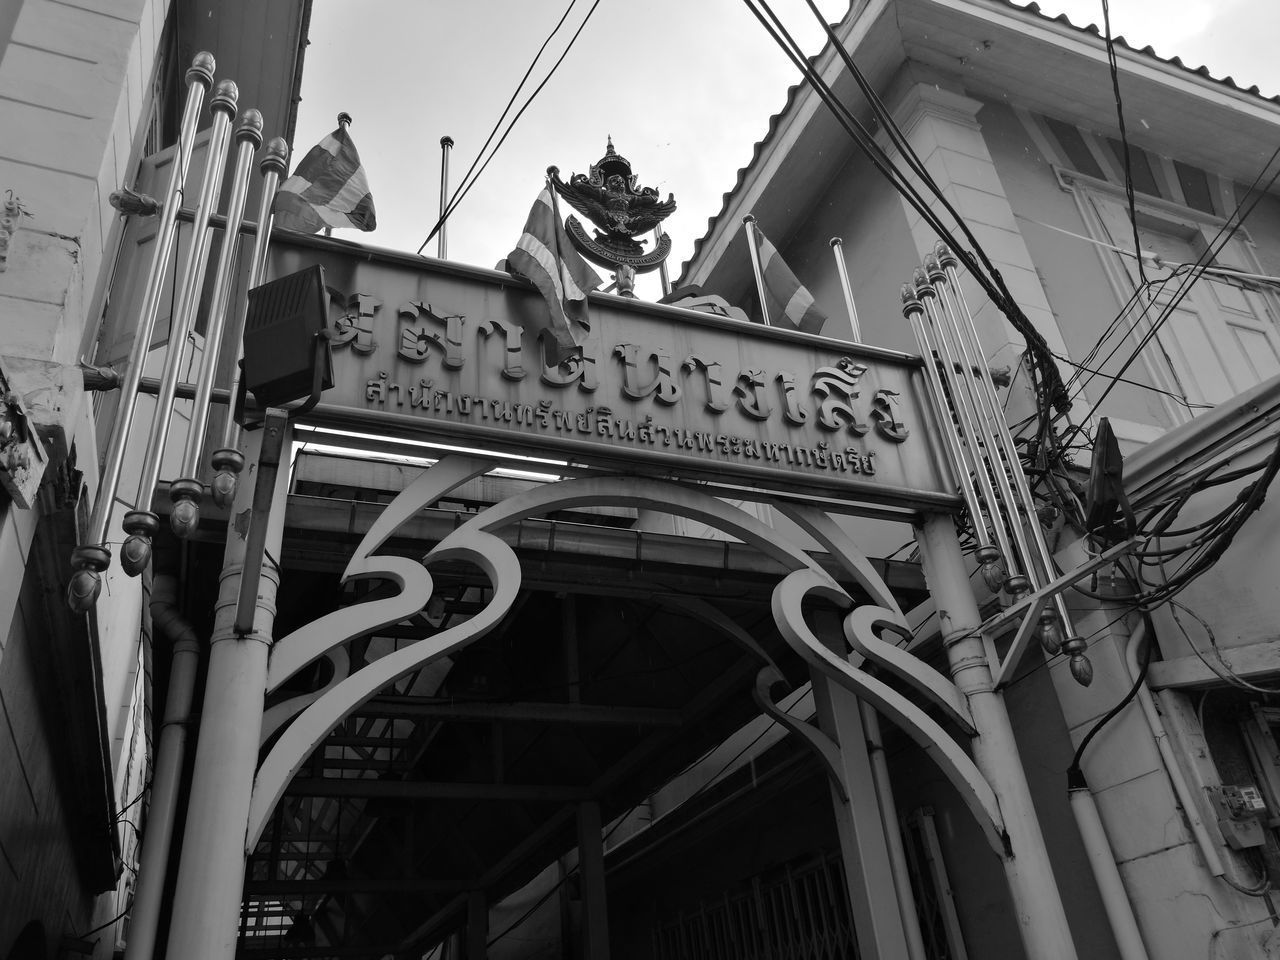 Bangkok Bangkokstreet Market Oldmarket Low Angle View Outdoors Built Structure Day Architecture No People Oldtown